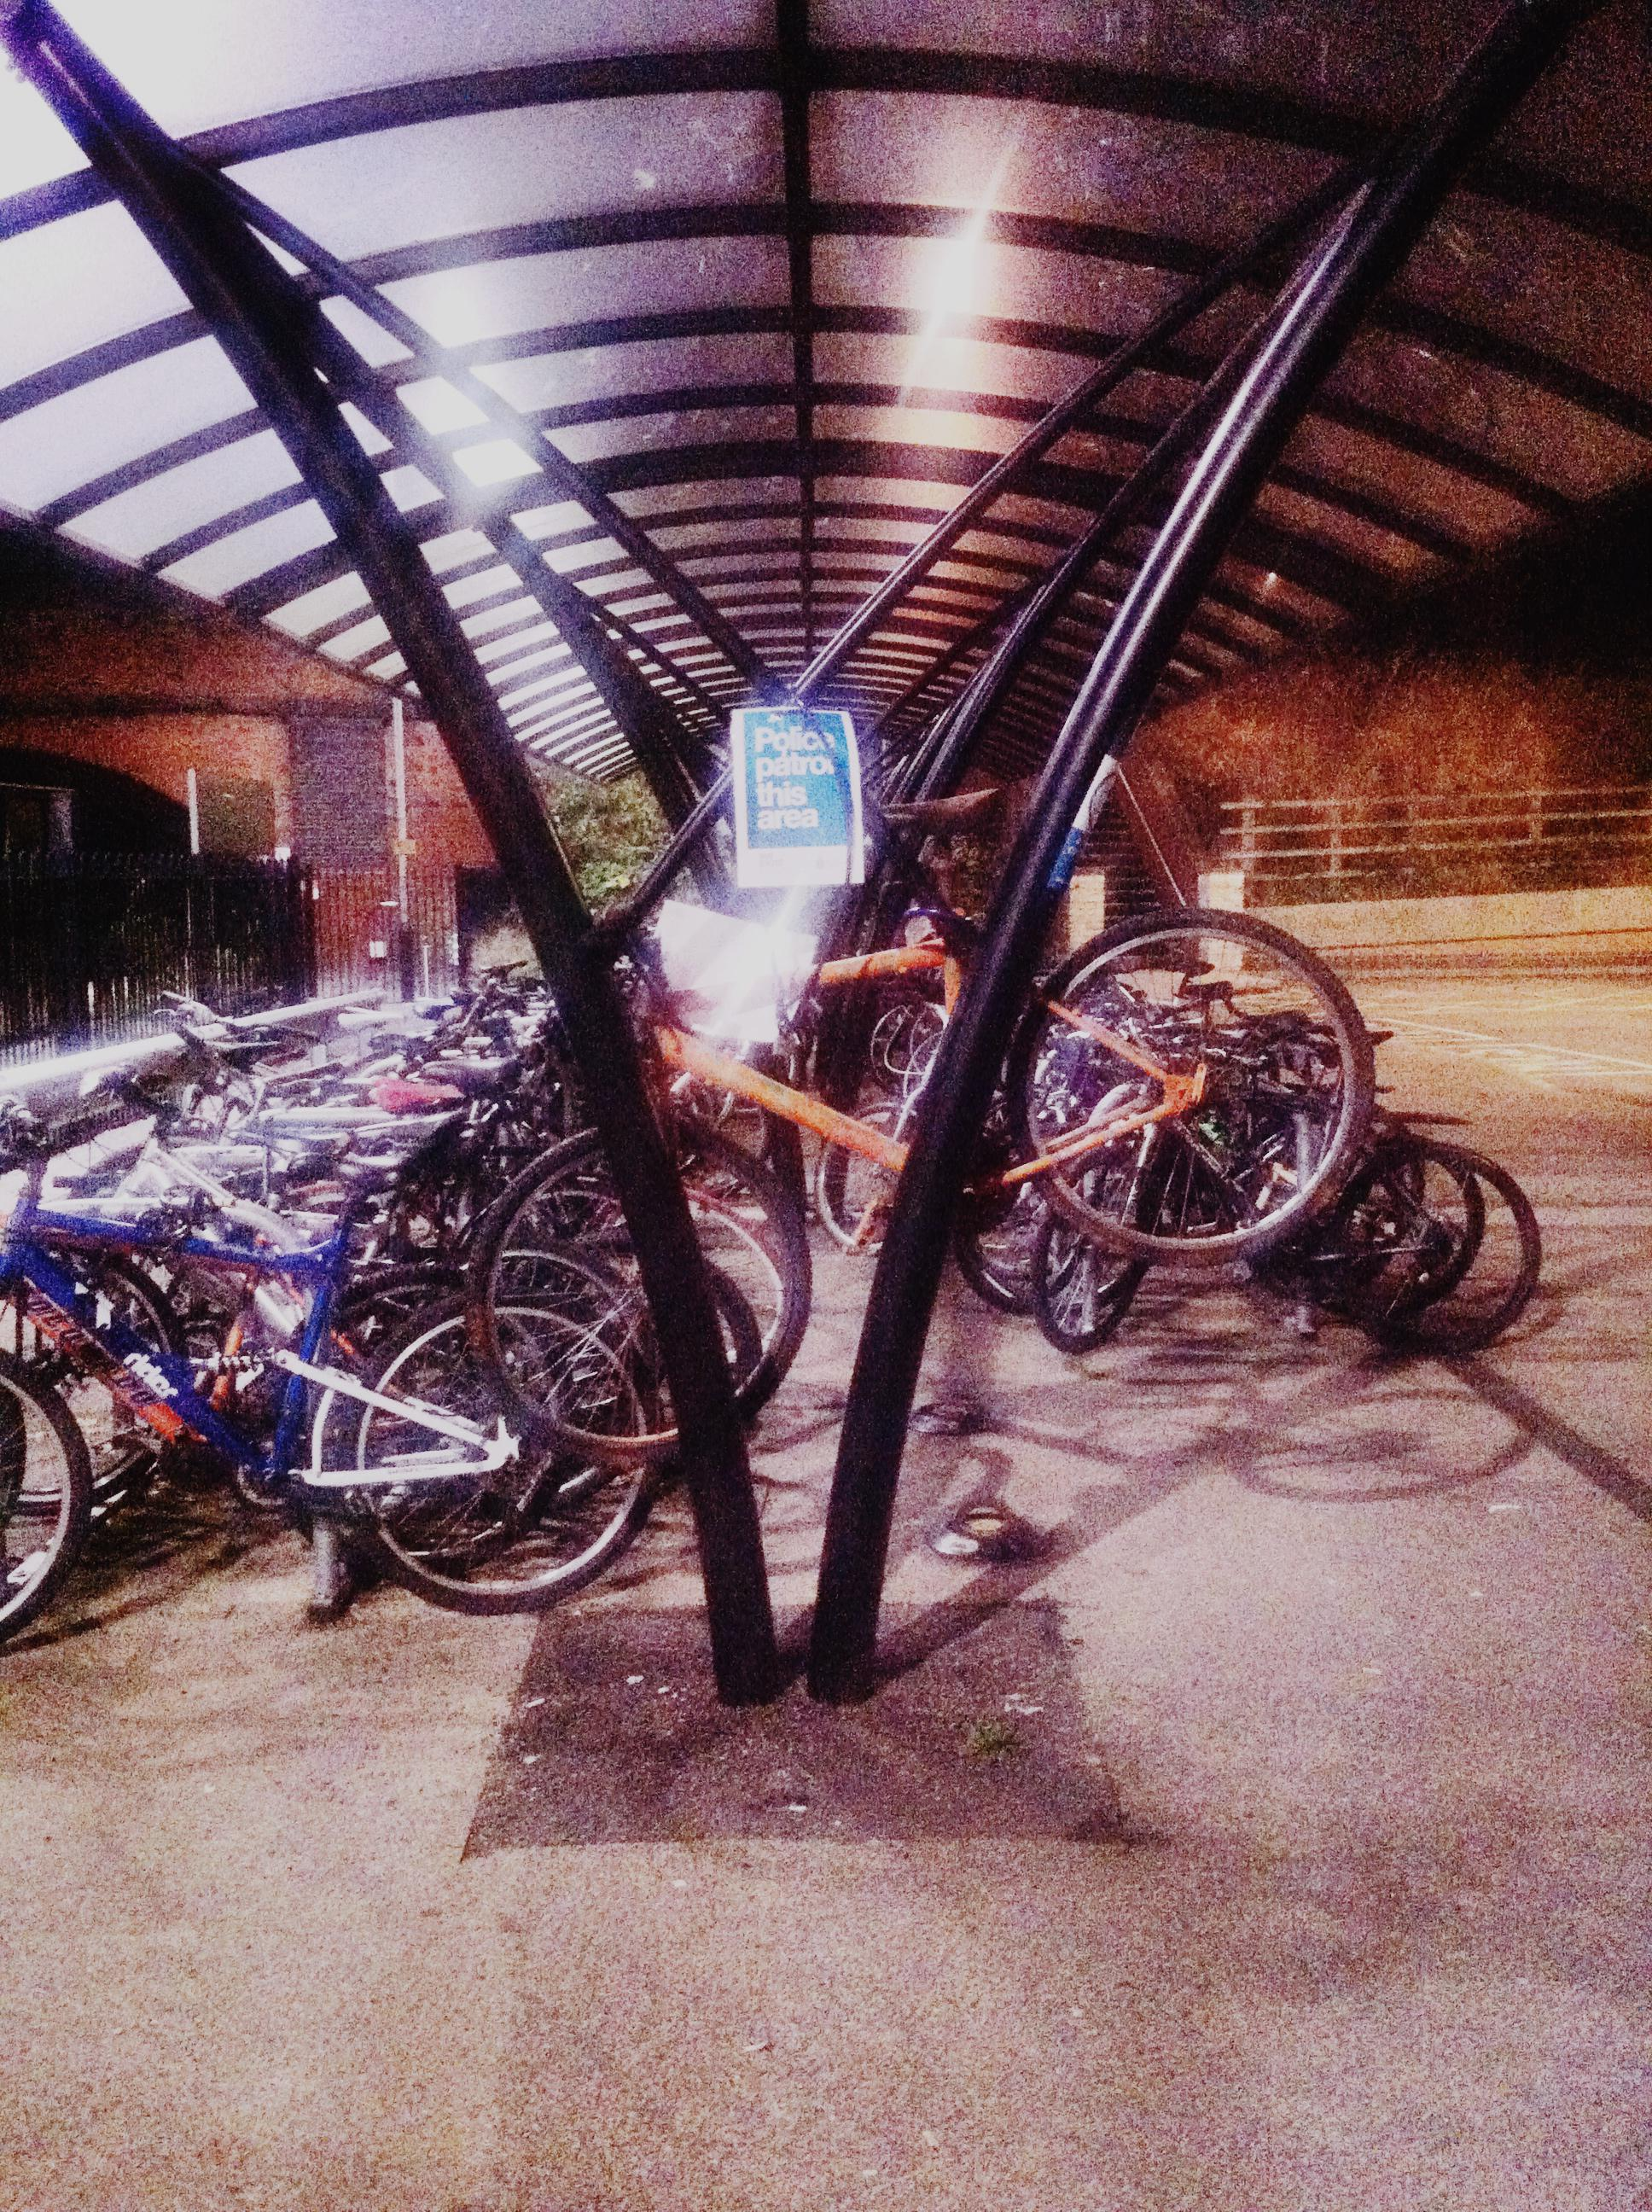 Photograph of bikes in Loughborough Railway Station at night by Paul Conneally